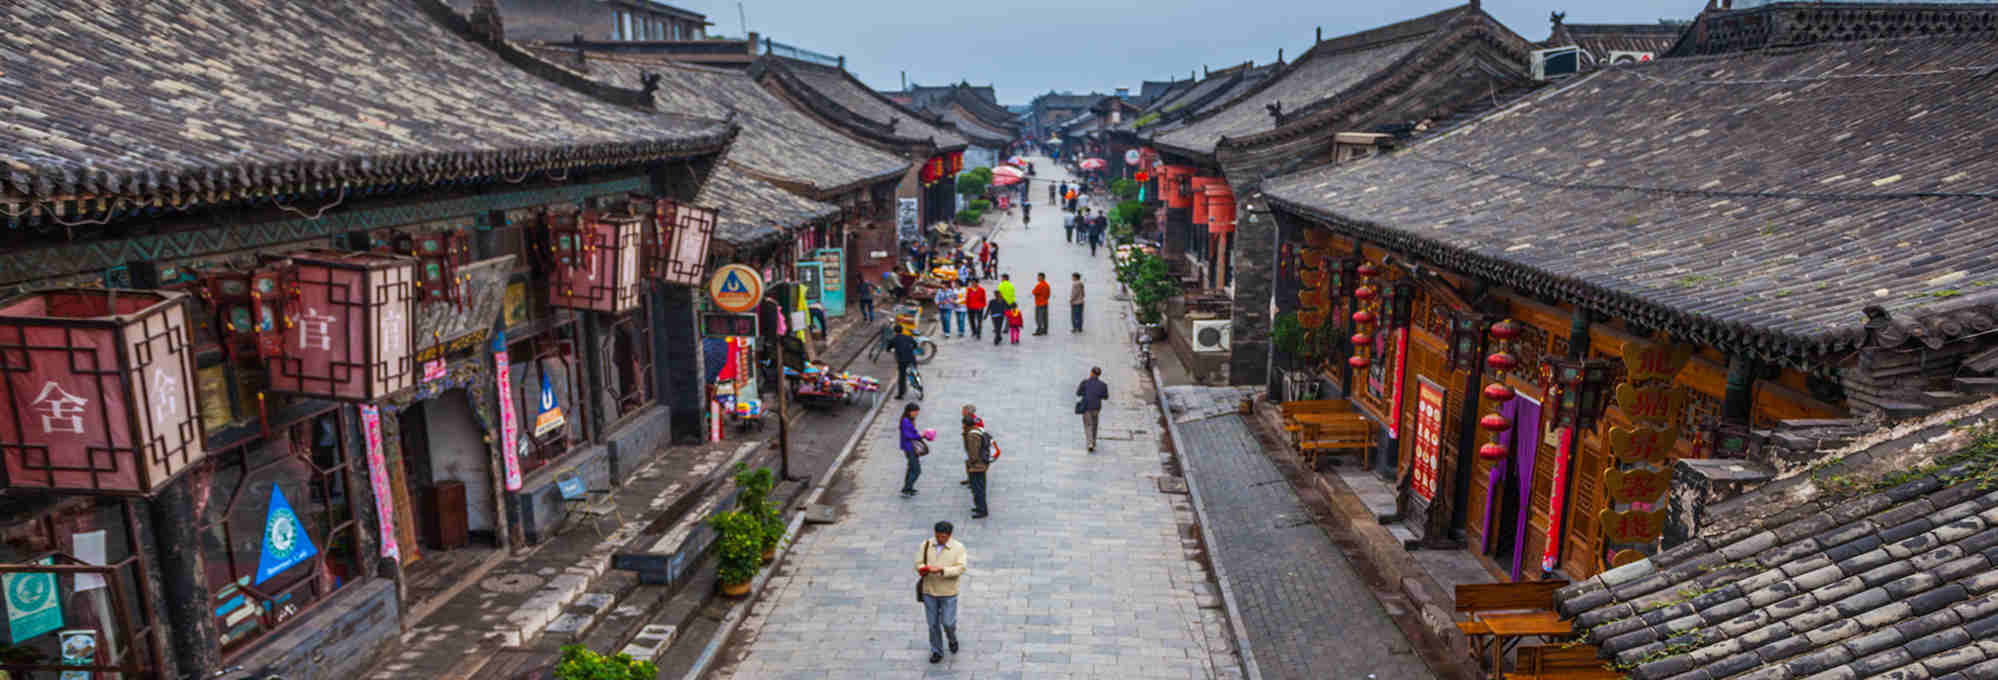 One-day Private Tour to Pingyao Ancient Town